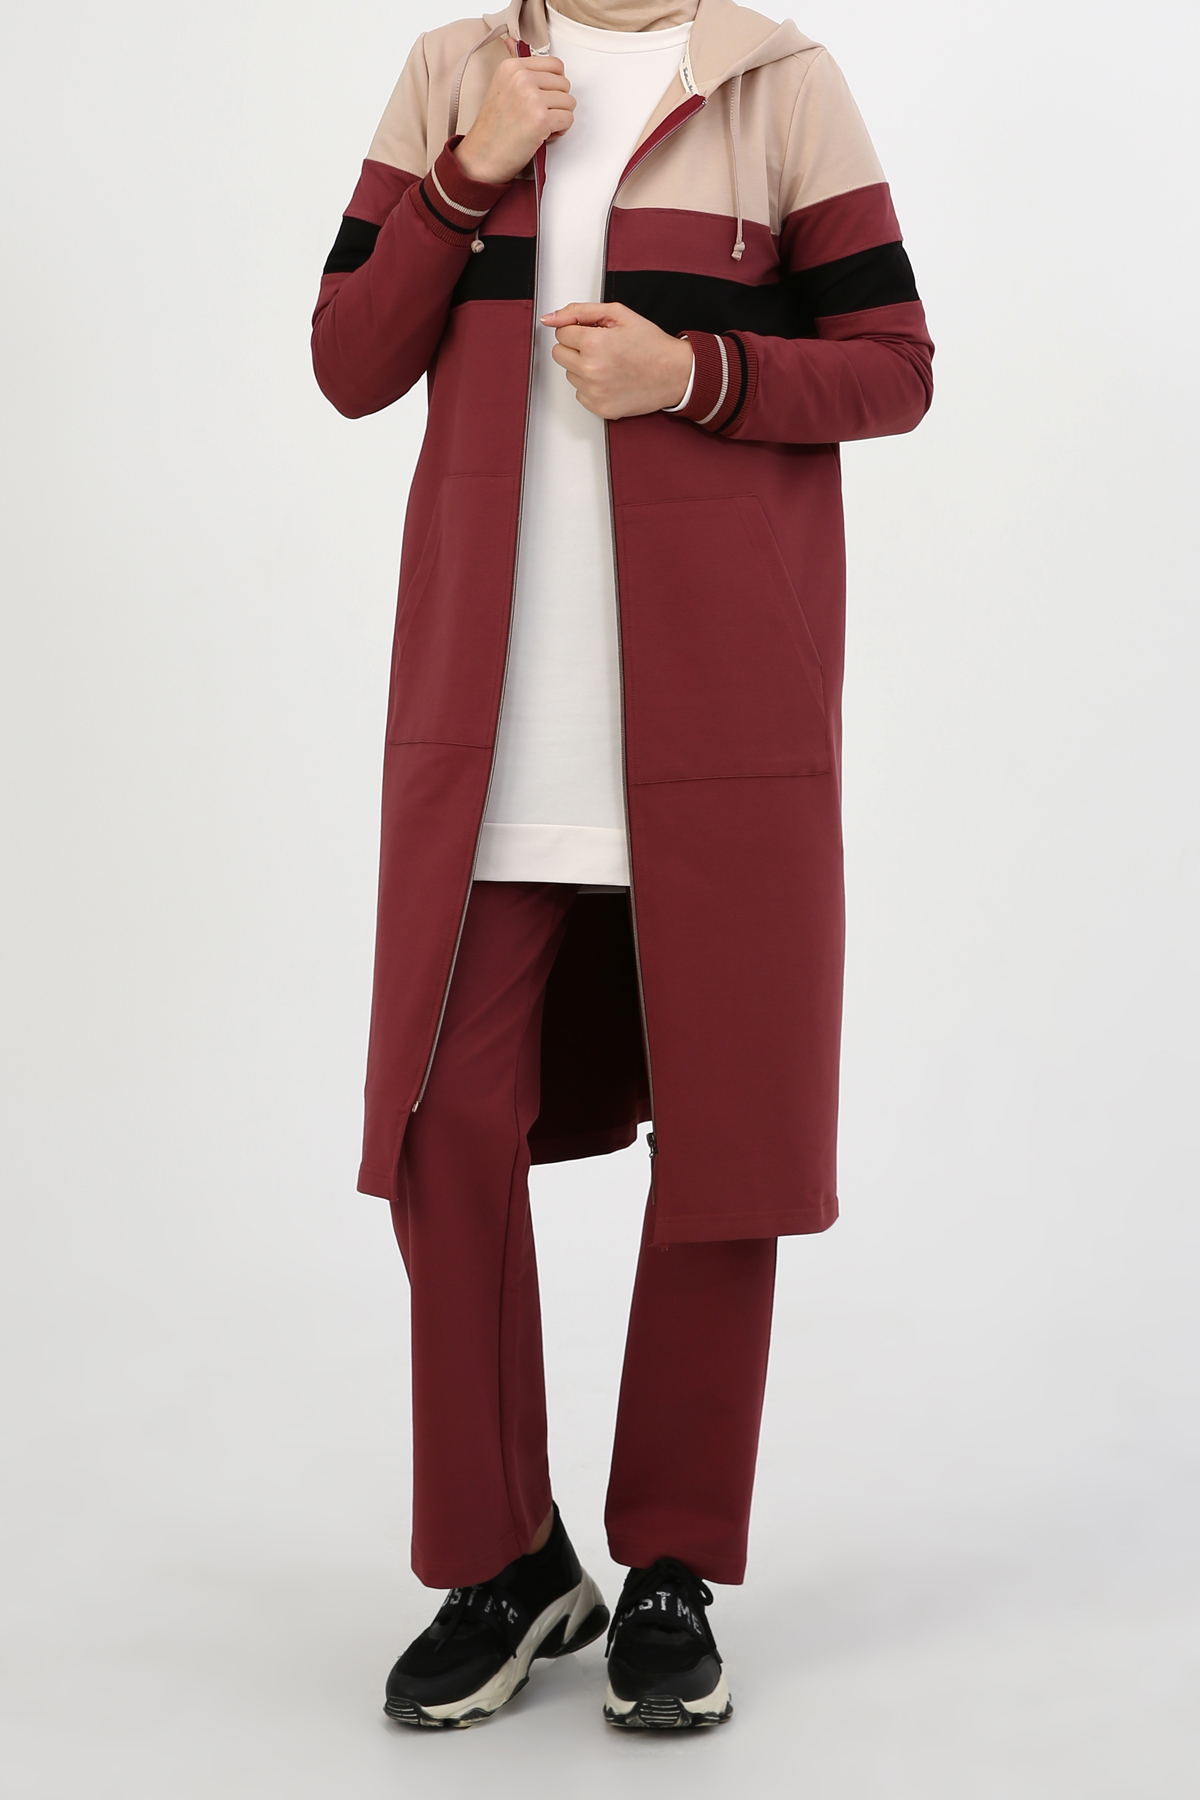 Plus Size Hooded Tracksuit